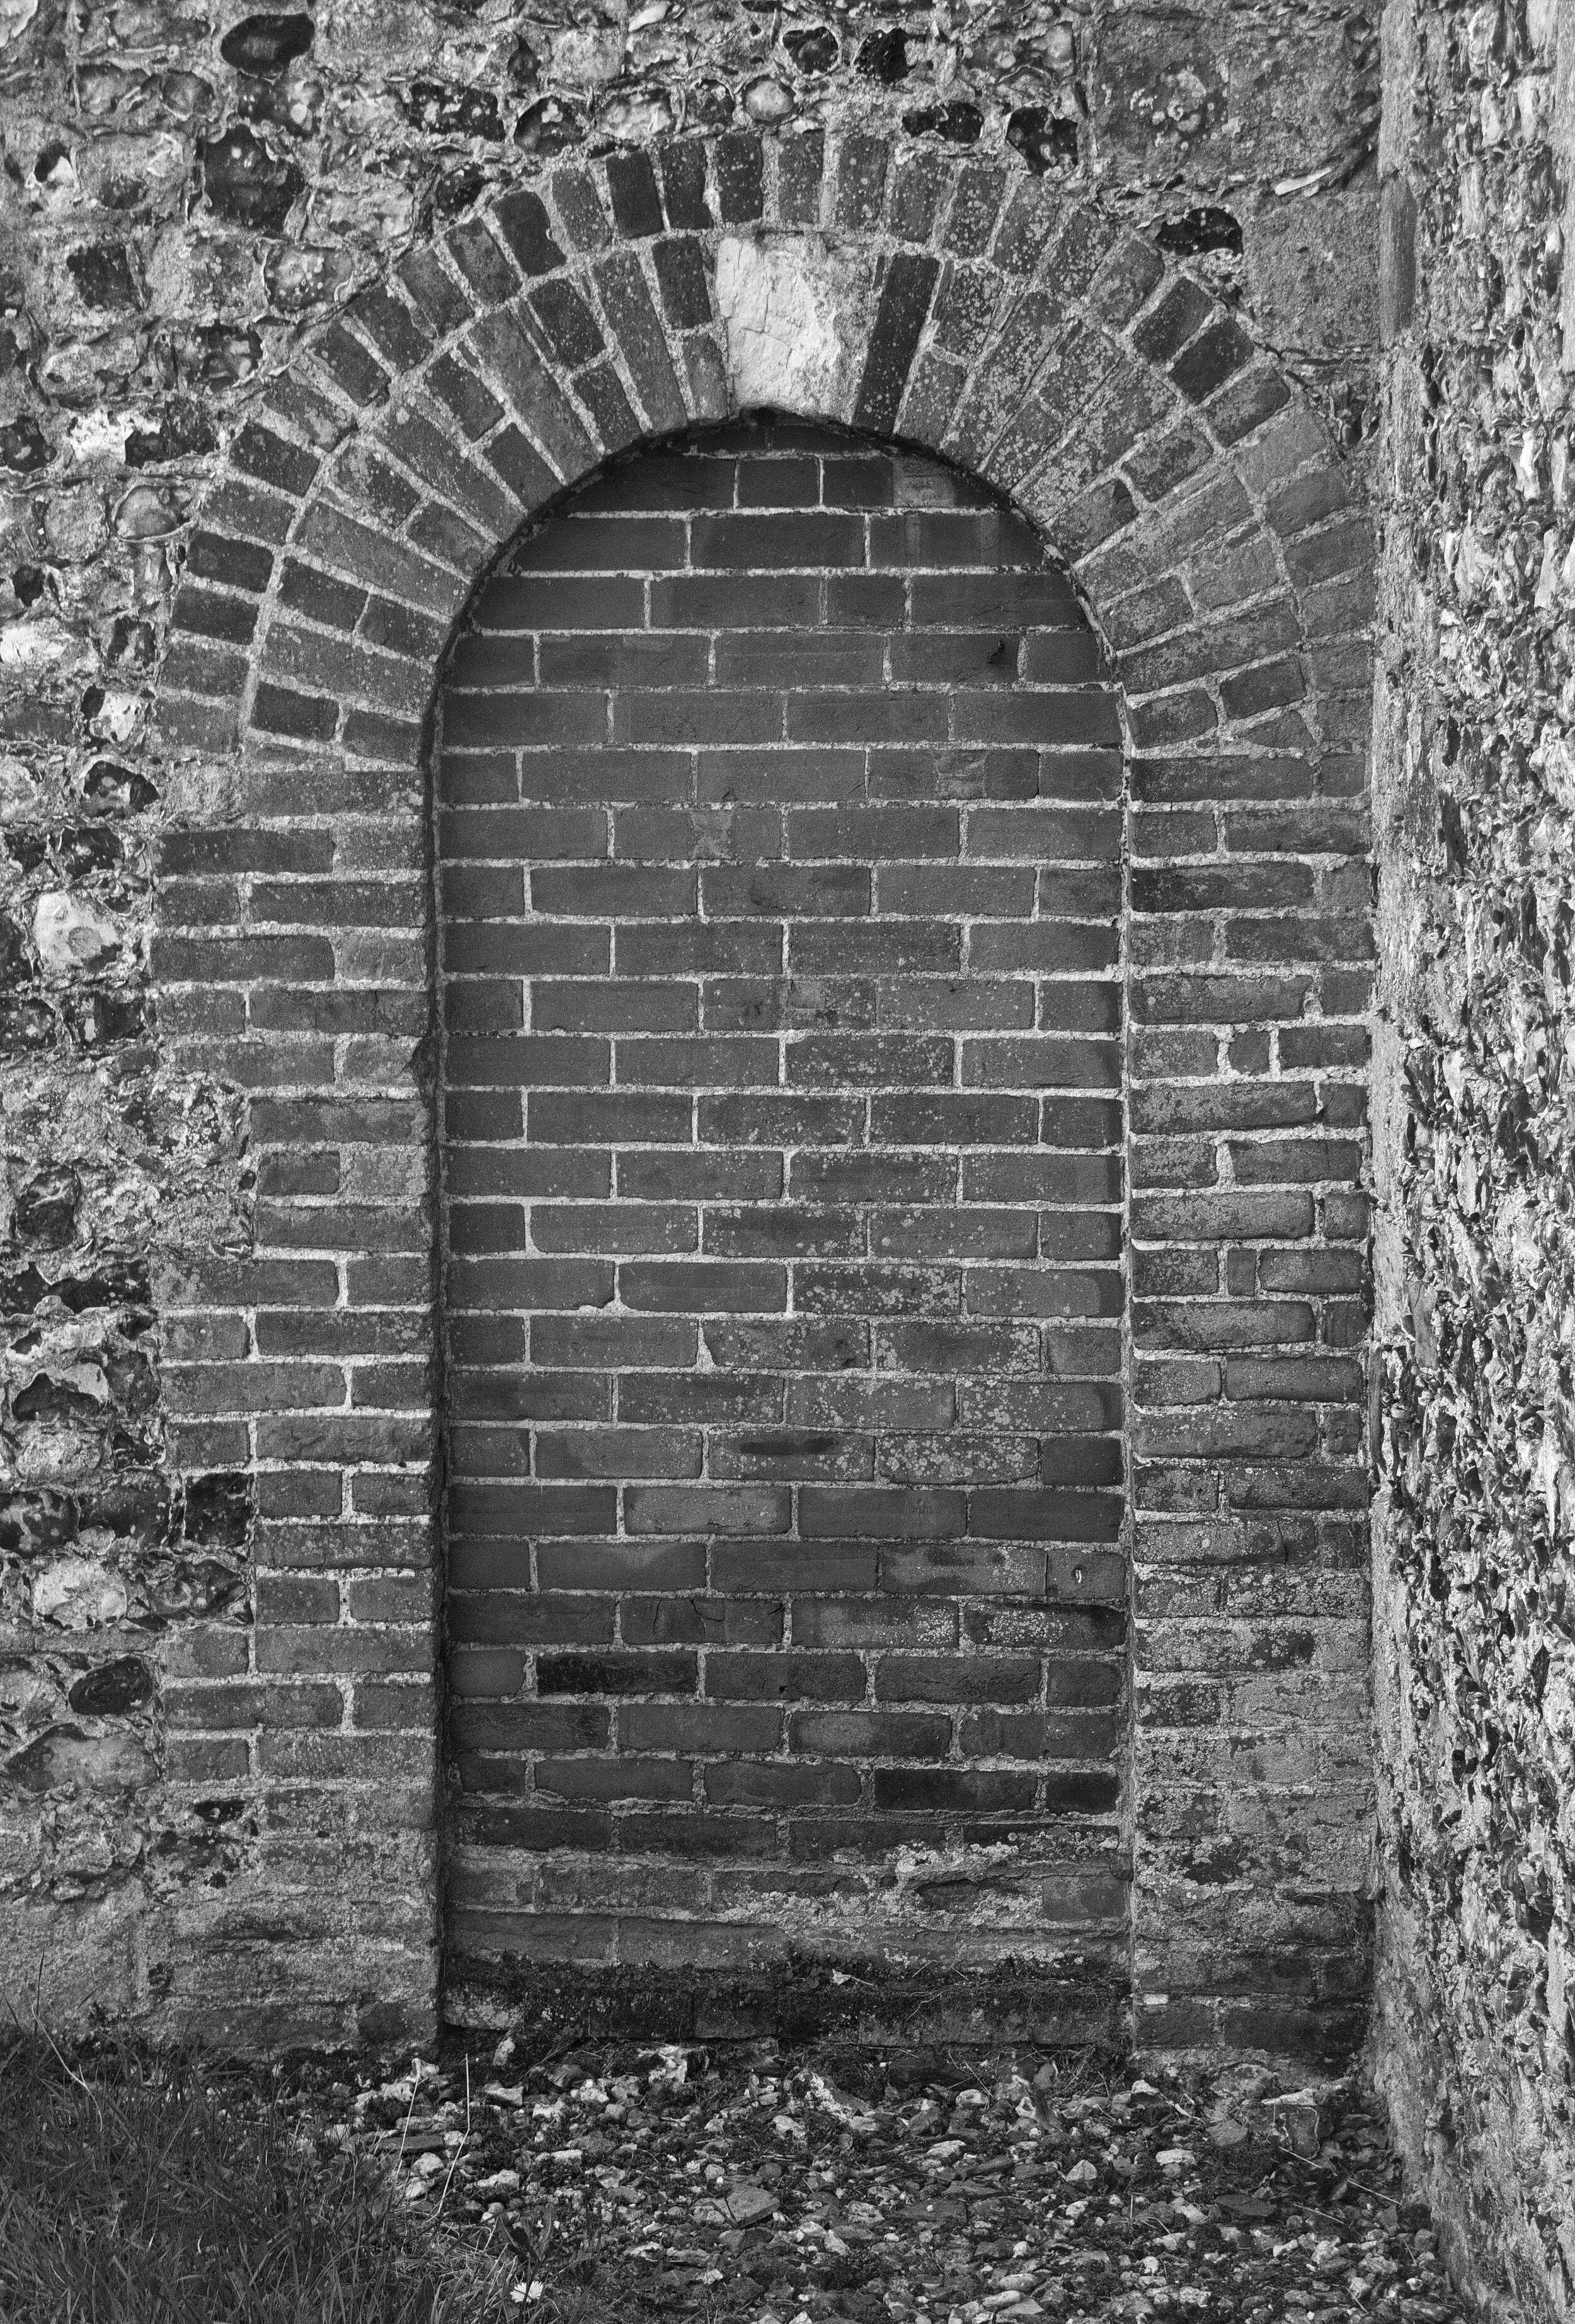 north-doorway-of-st-gregory-and-st-martins-church-wye_48751588342_o.jpg